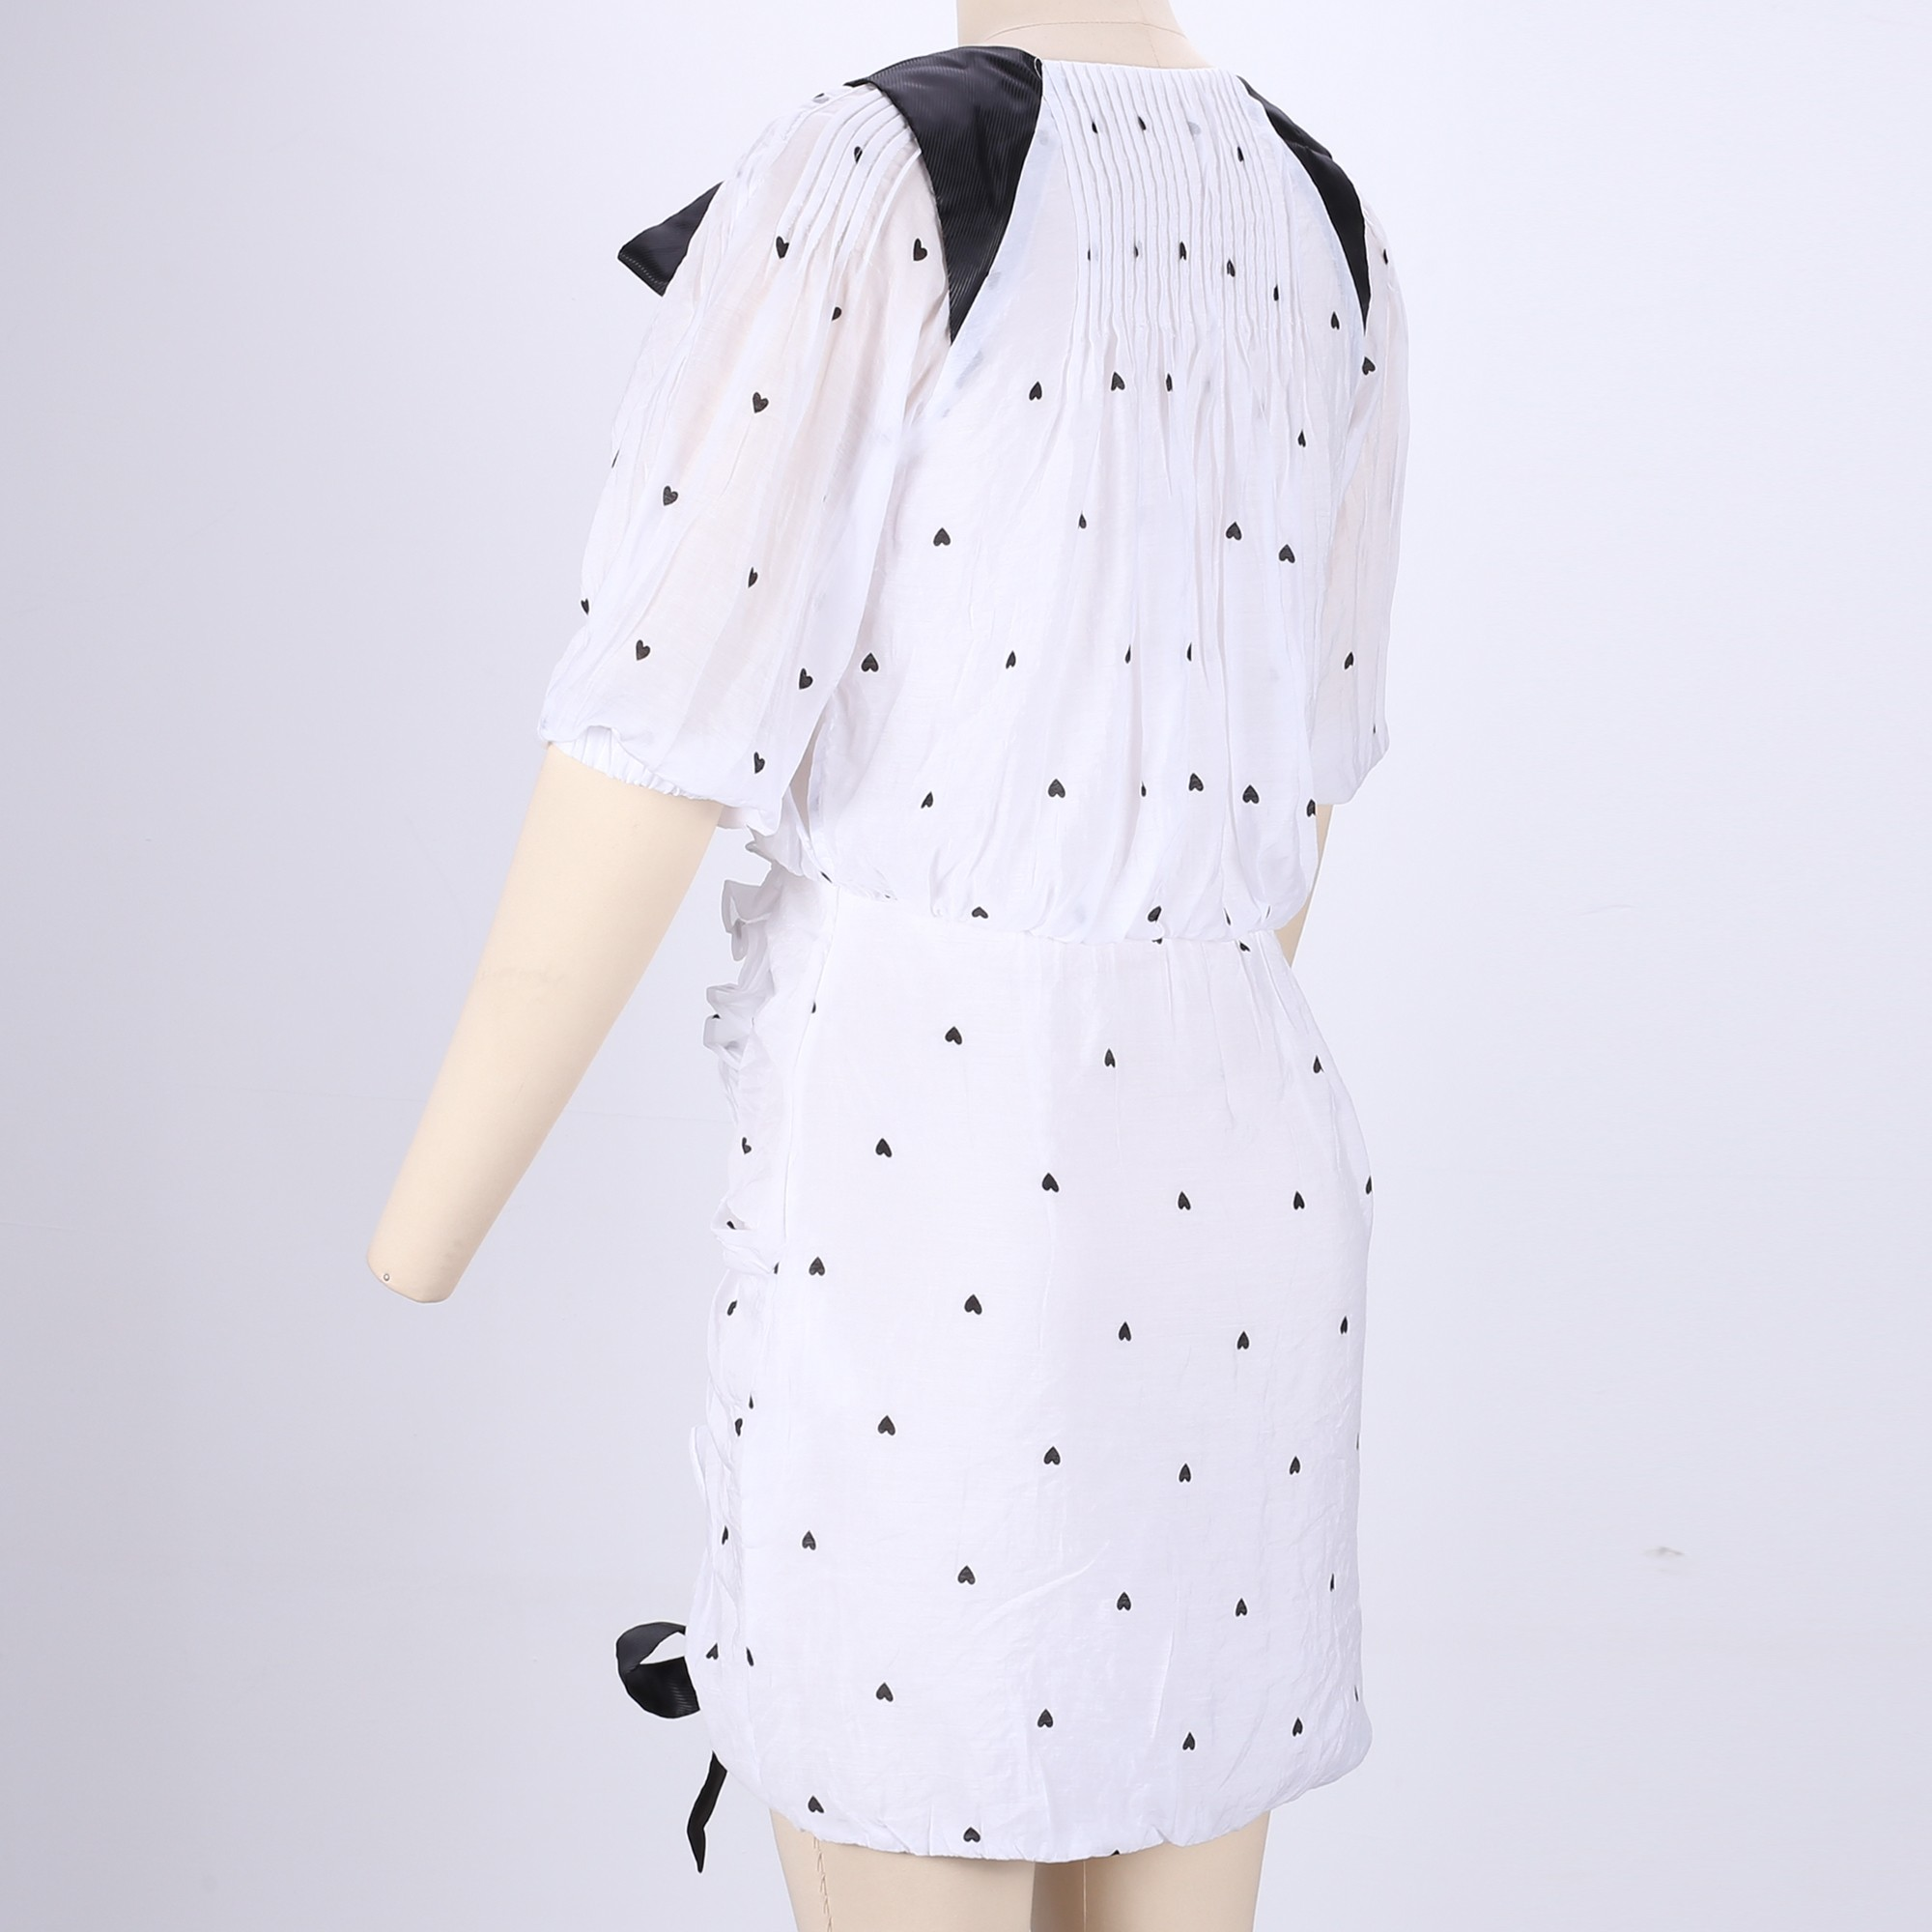 Rayon - White V Neck Short Sleeve Mini Ruched With Ties Special Bodycon Dress HJ544-White